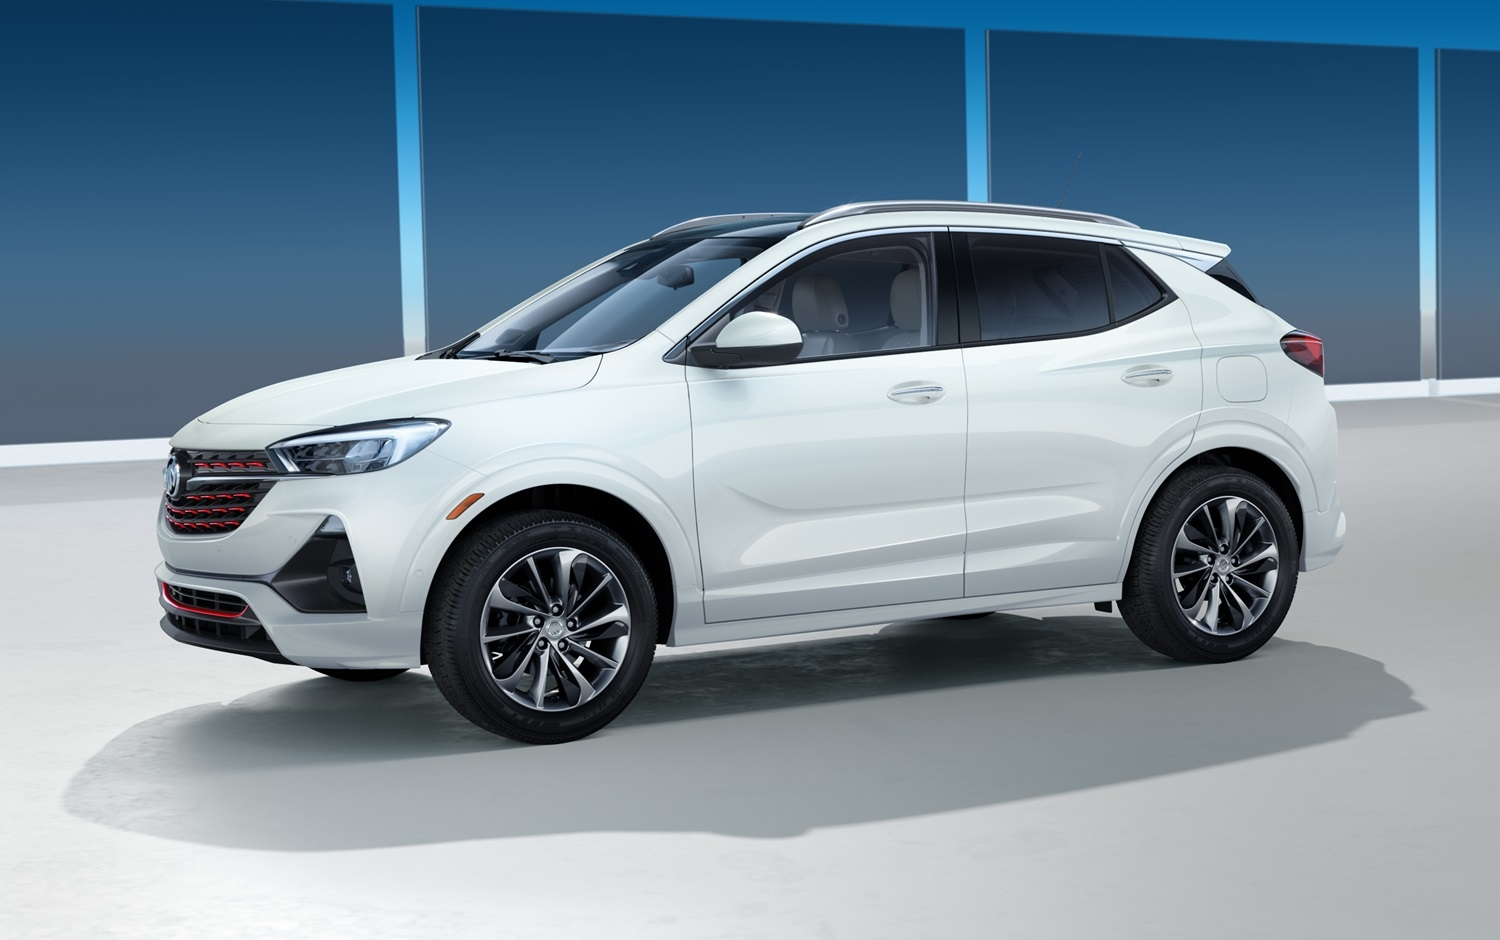 2021 Buick Encore Gx Info, Specs, Wiki | Gm Authority 2021 Buick Encore Gx Review, Dimensions, Price